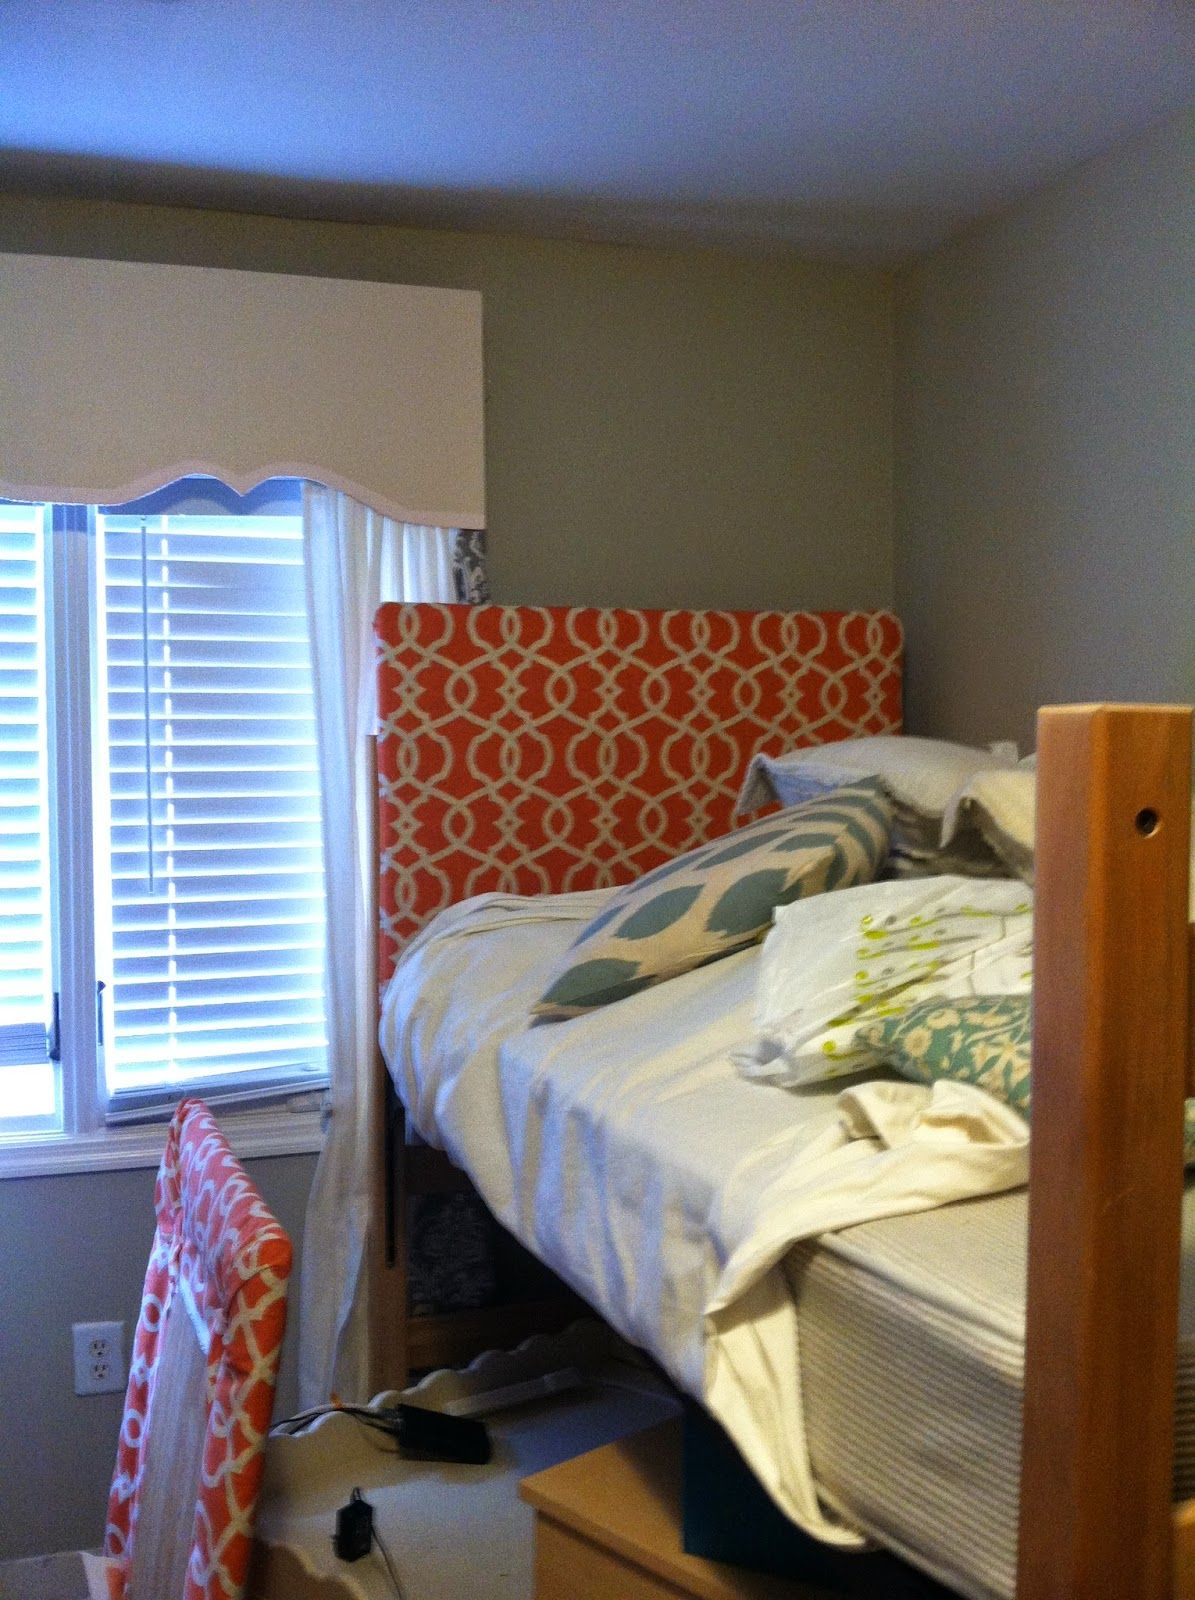 20 Dorm Room Padded Headboard Pictures And Ideas On Carver Museum